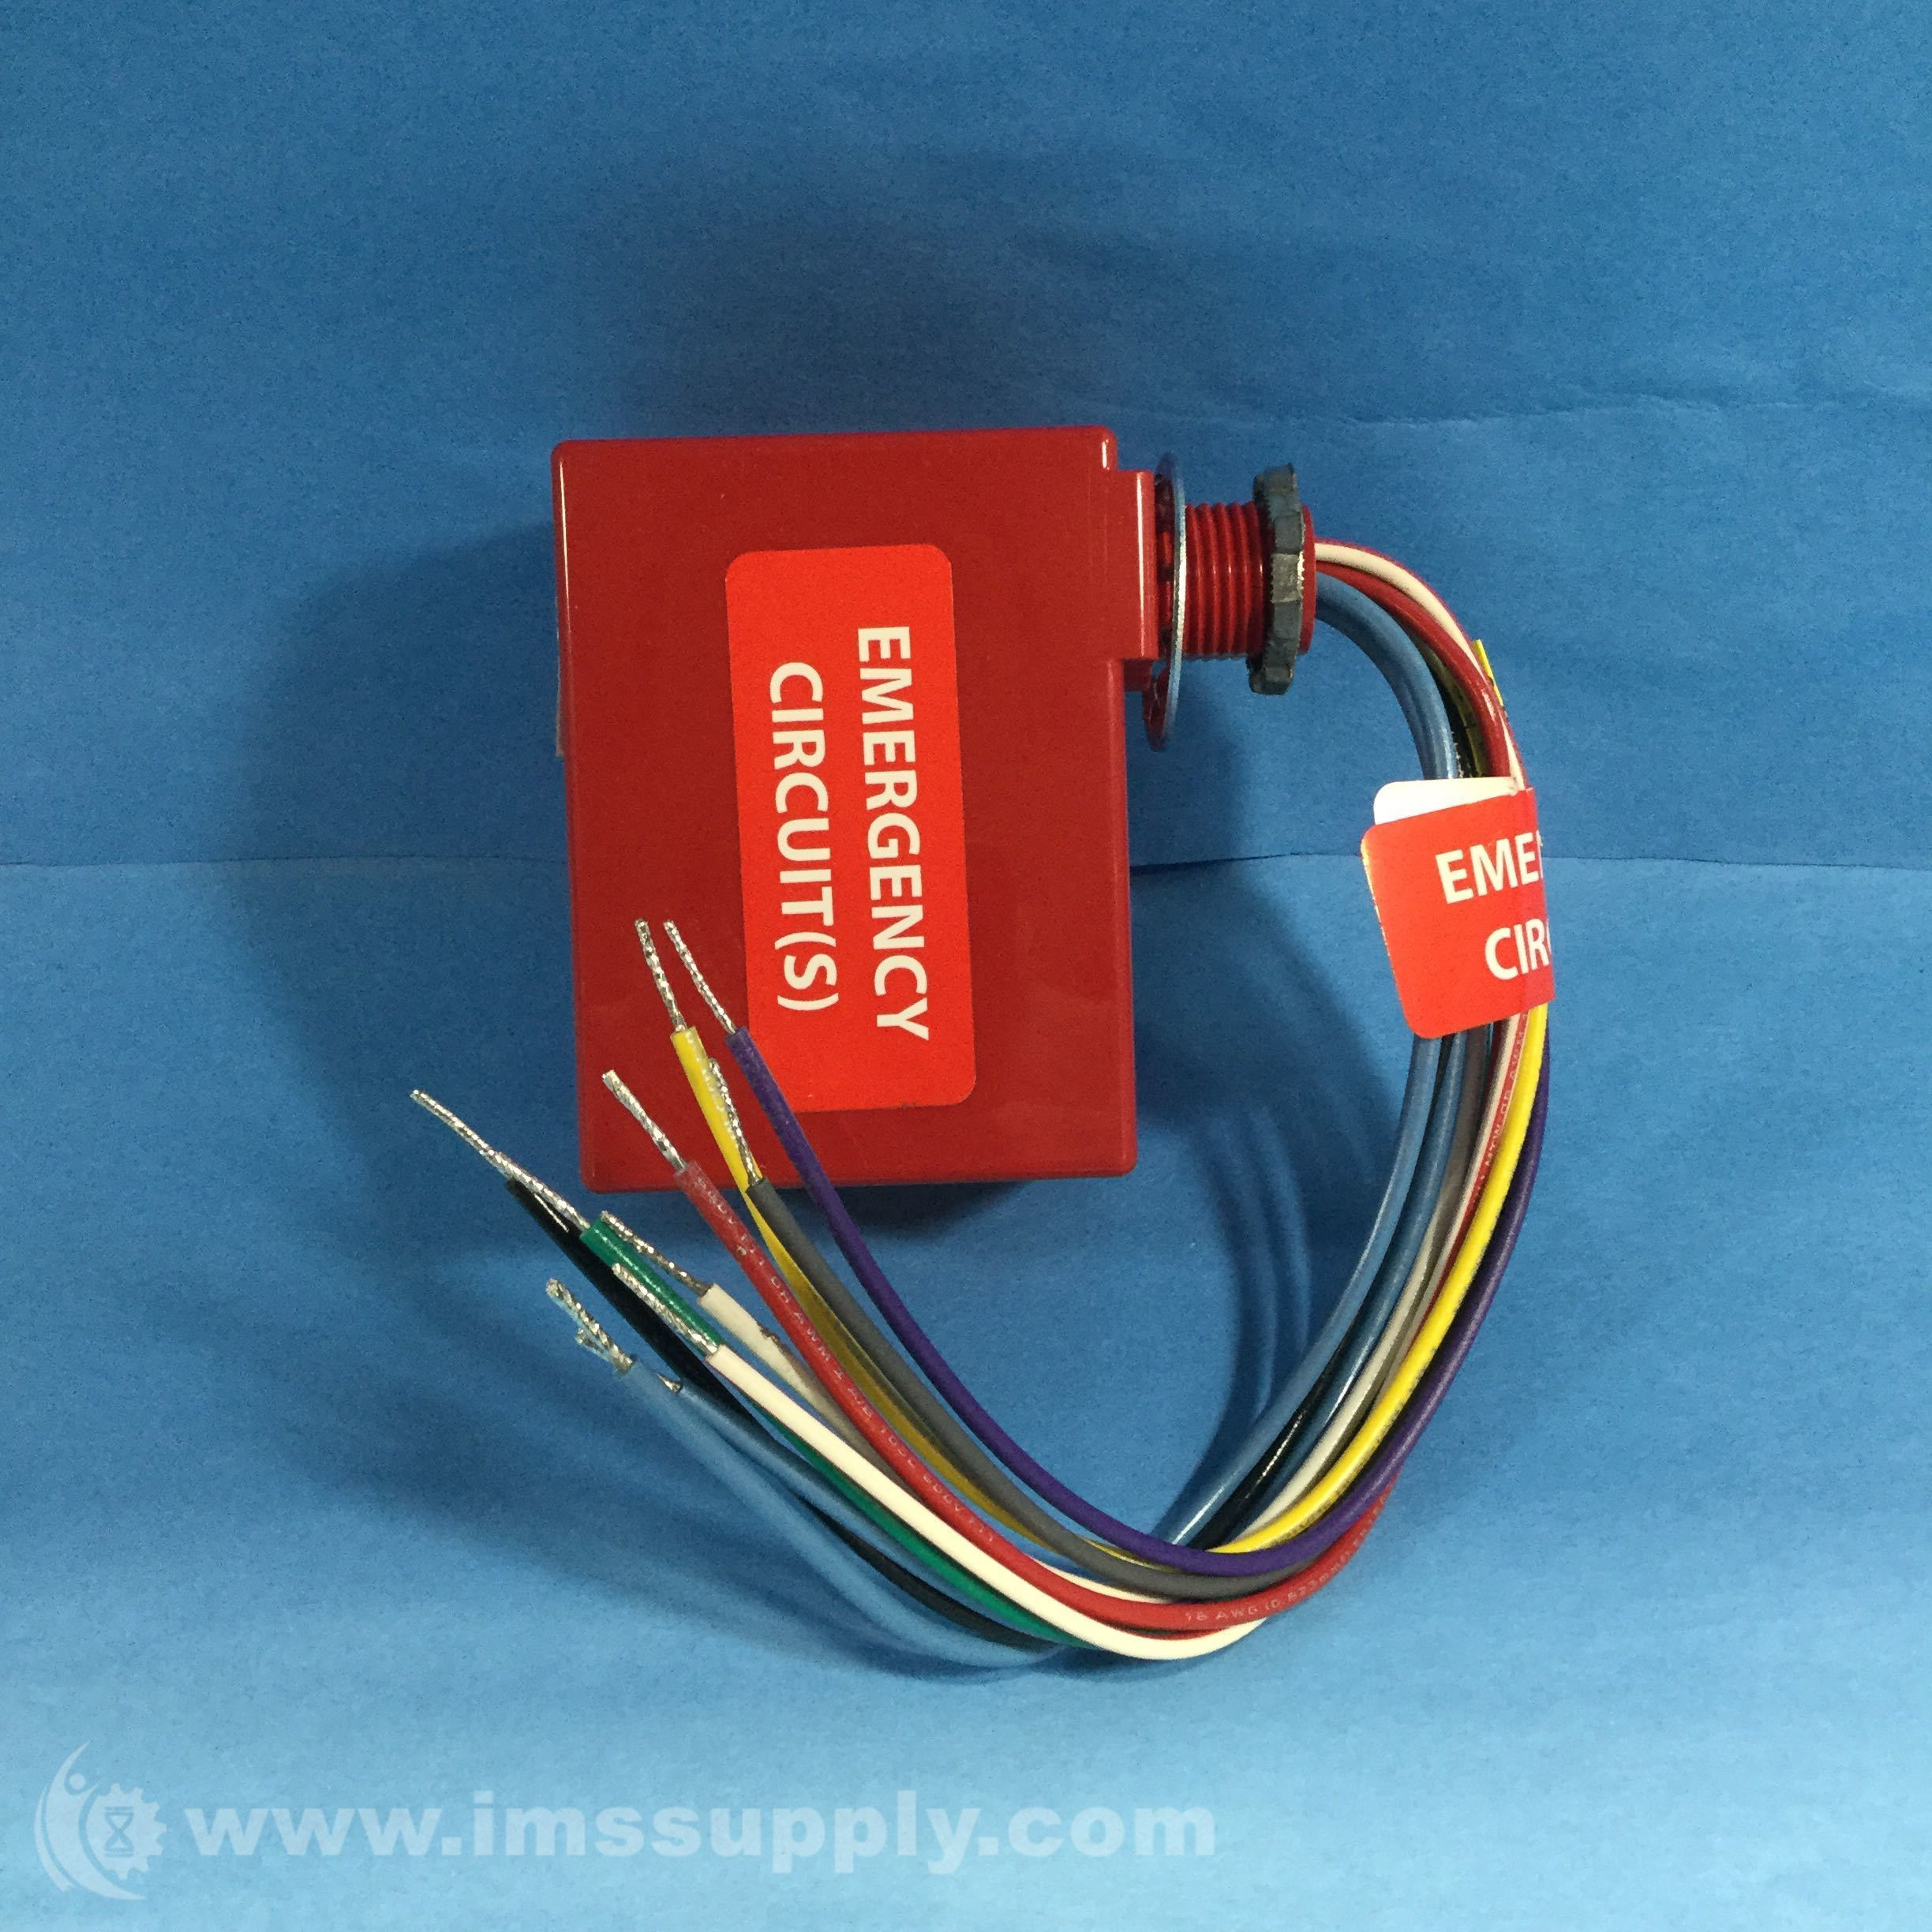 Acuity Controls Npp16-d-er Power  Relay Pack